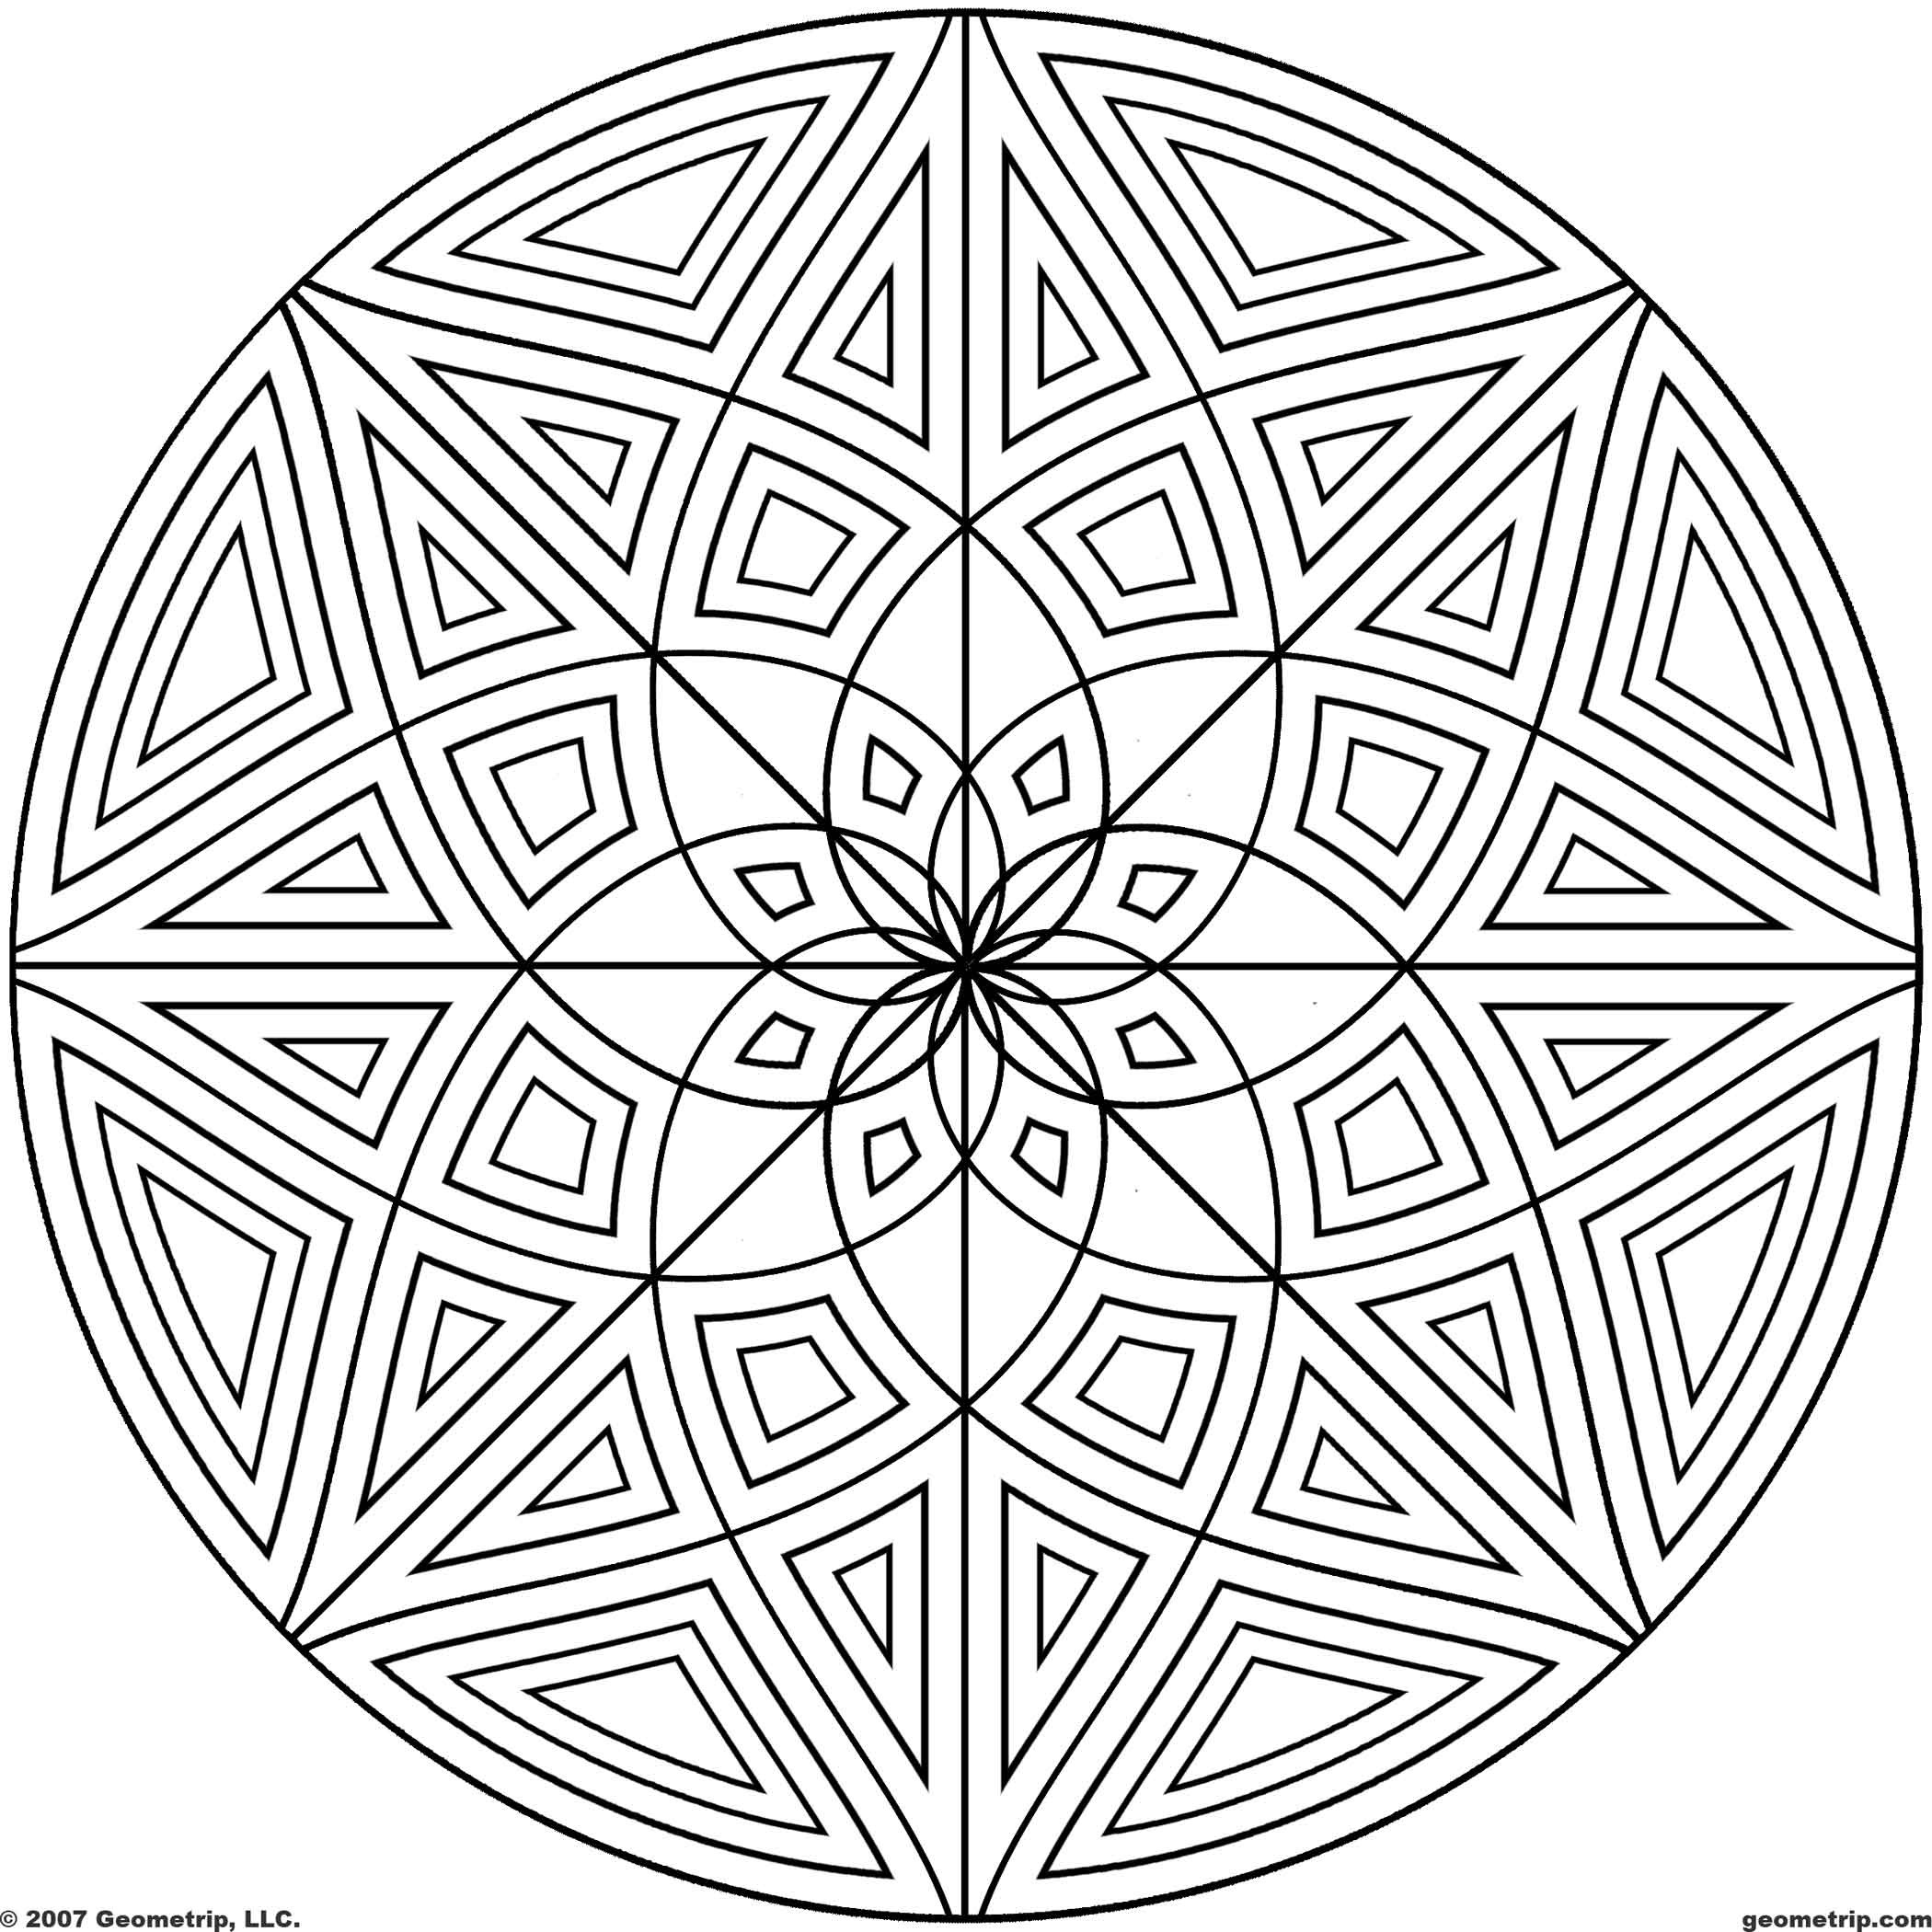 pattern colouring pages to print 16 cool coloring pages of designs images cool geometric colouring pages pattern to print